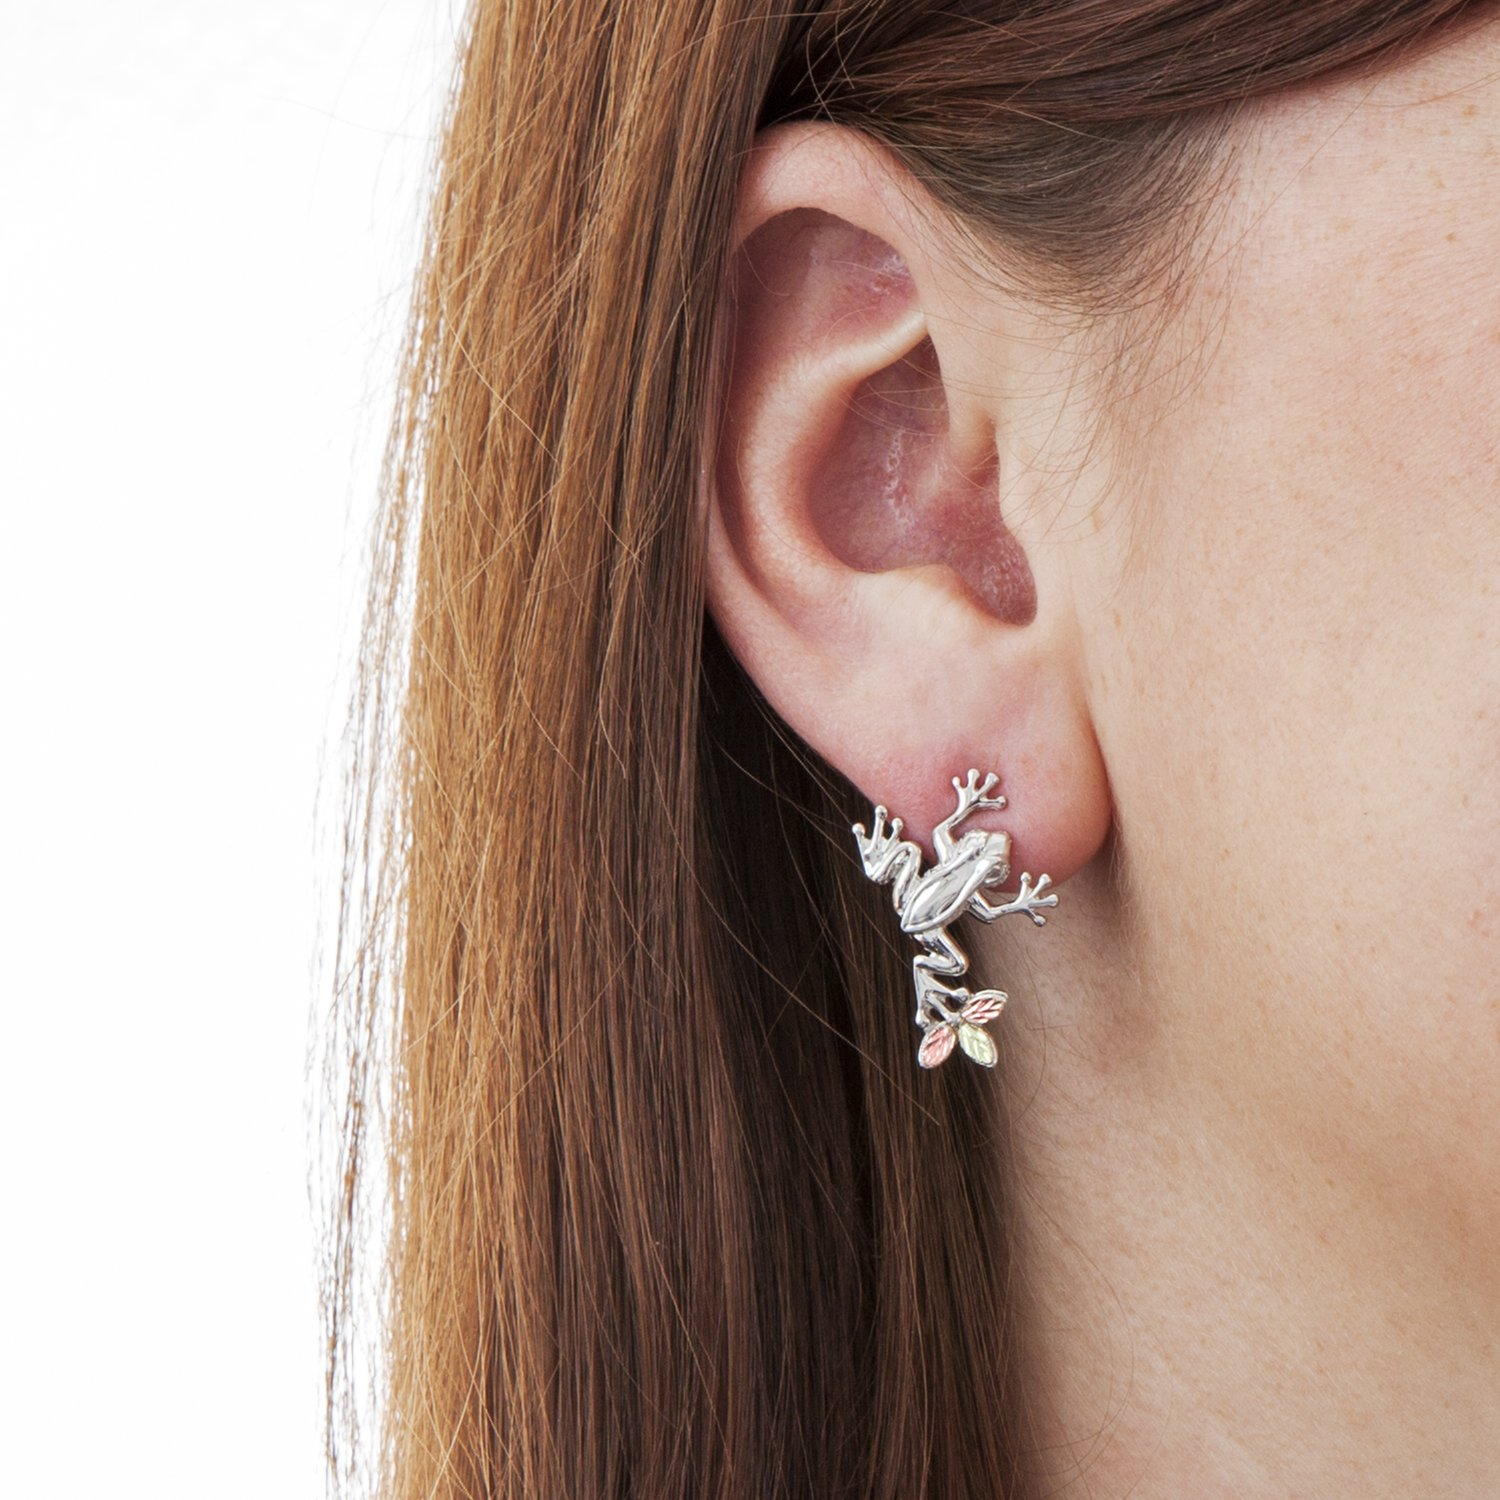 Petite Frog Design Earrings, Sterling Silver, 12k Green and Rose Gold Black Hills Gold Motif by Black Hills Gold Jewelry (Image #3)